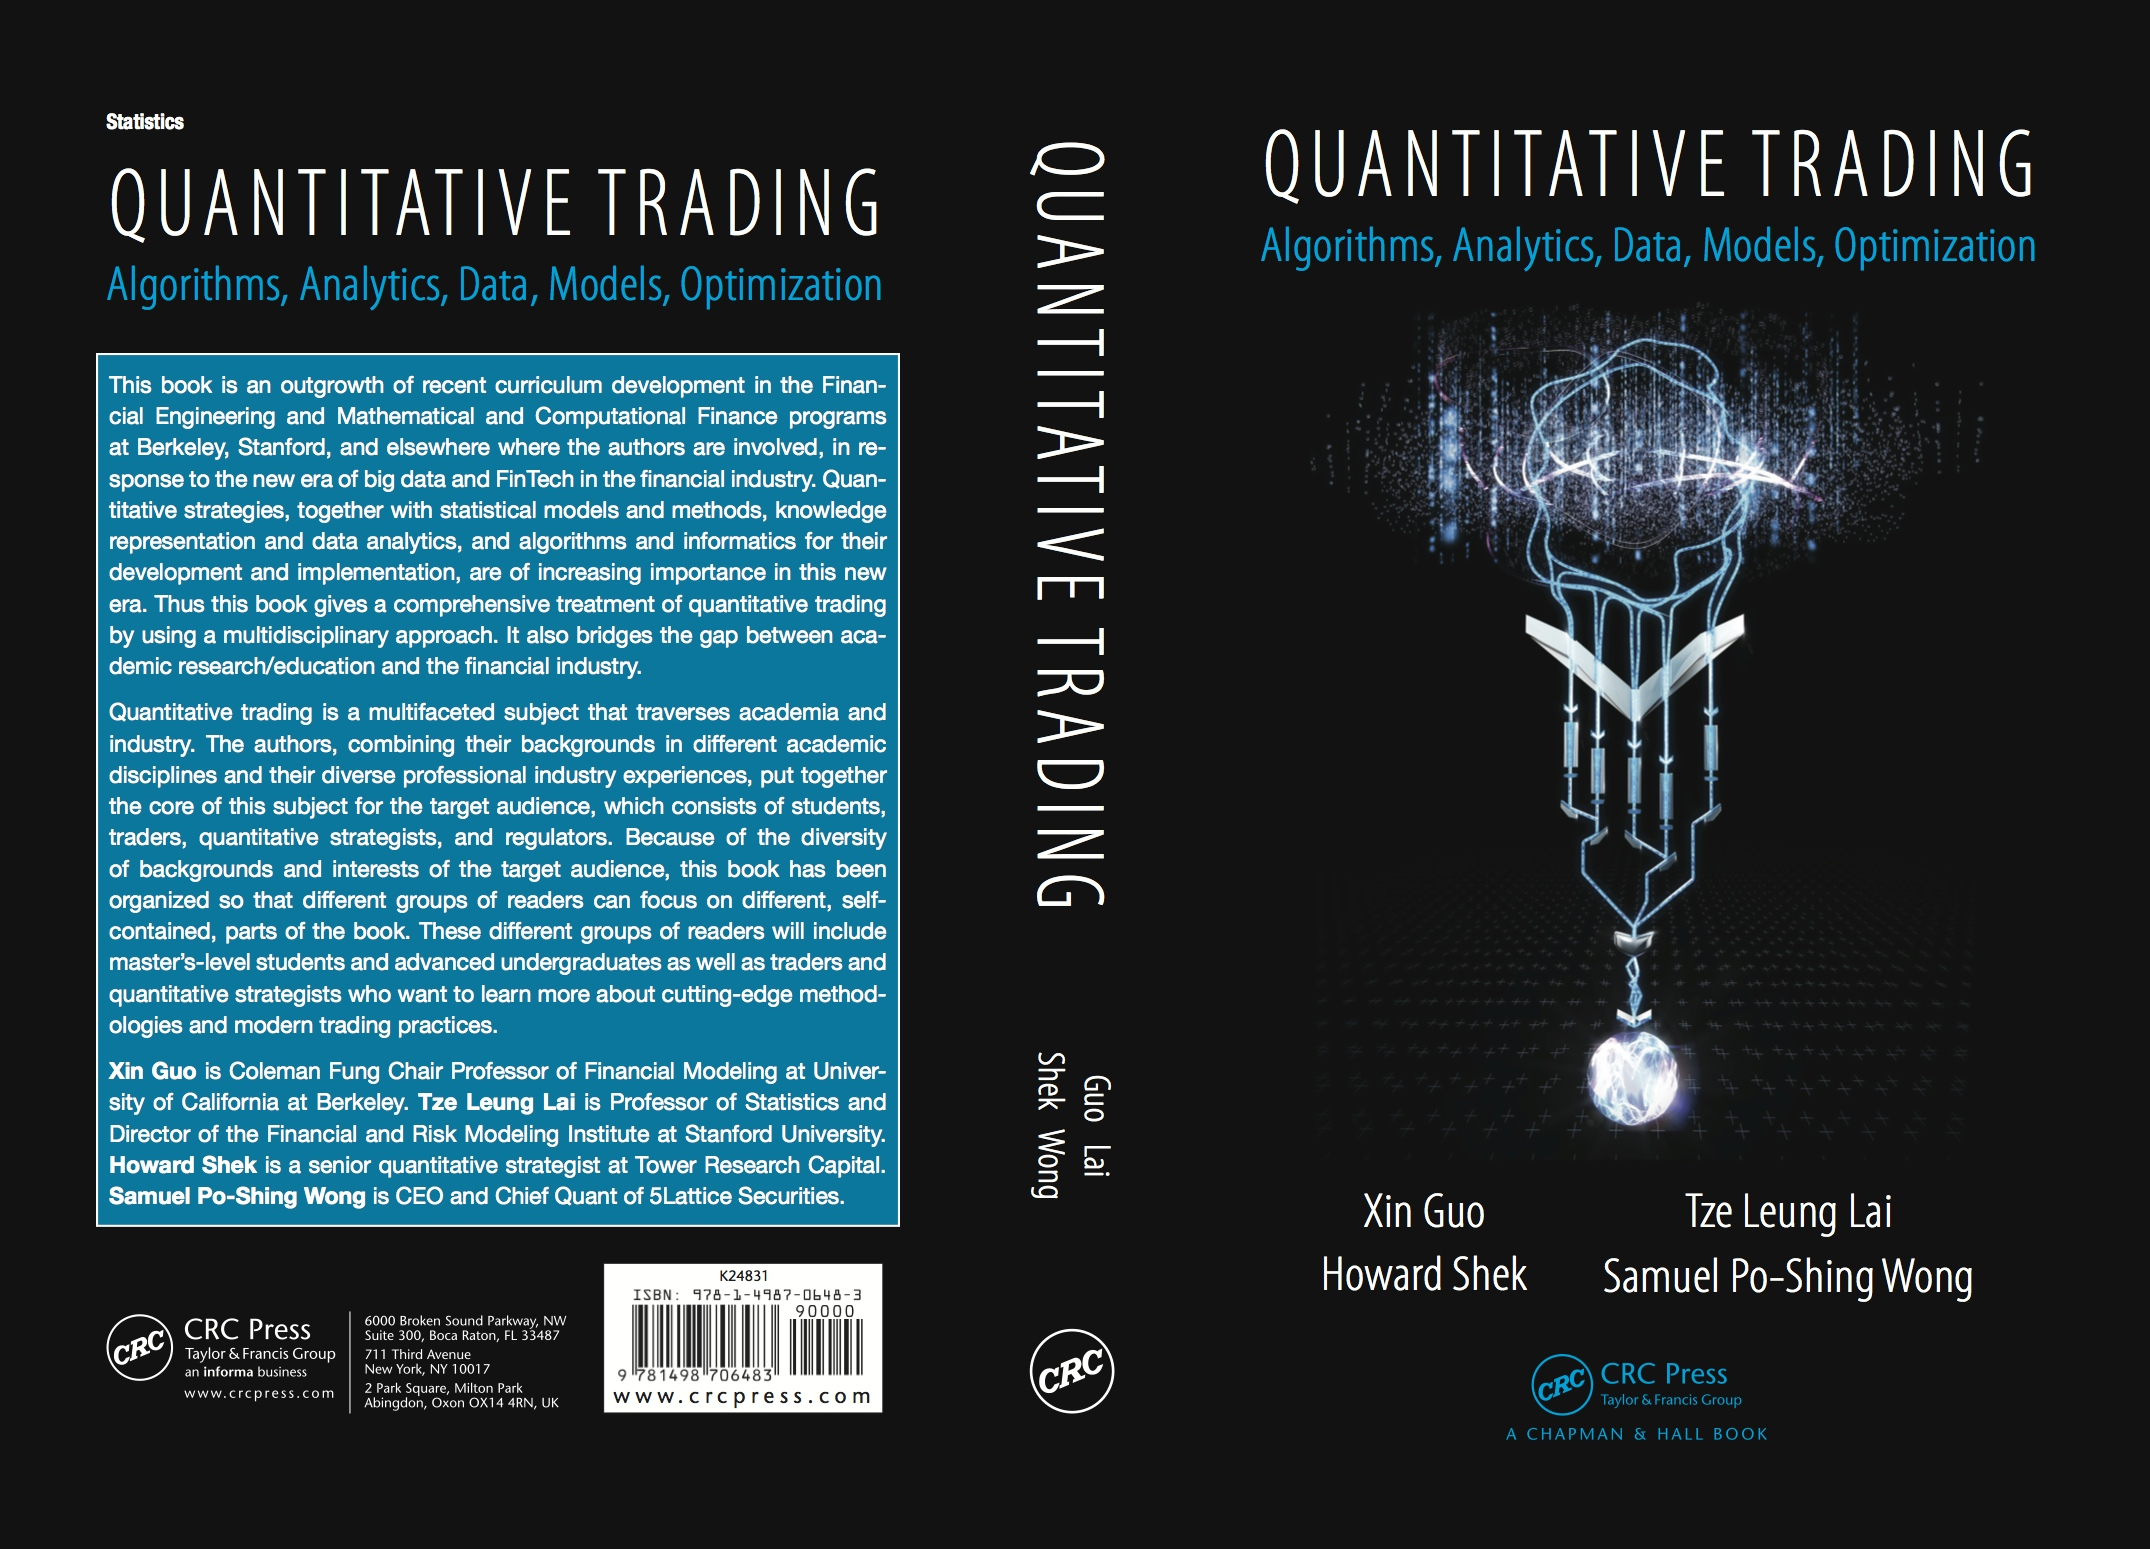 Quantitative Trading: Guo, Lai, Shek and Wong